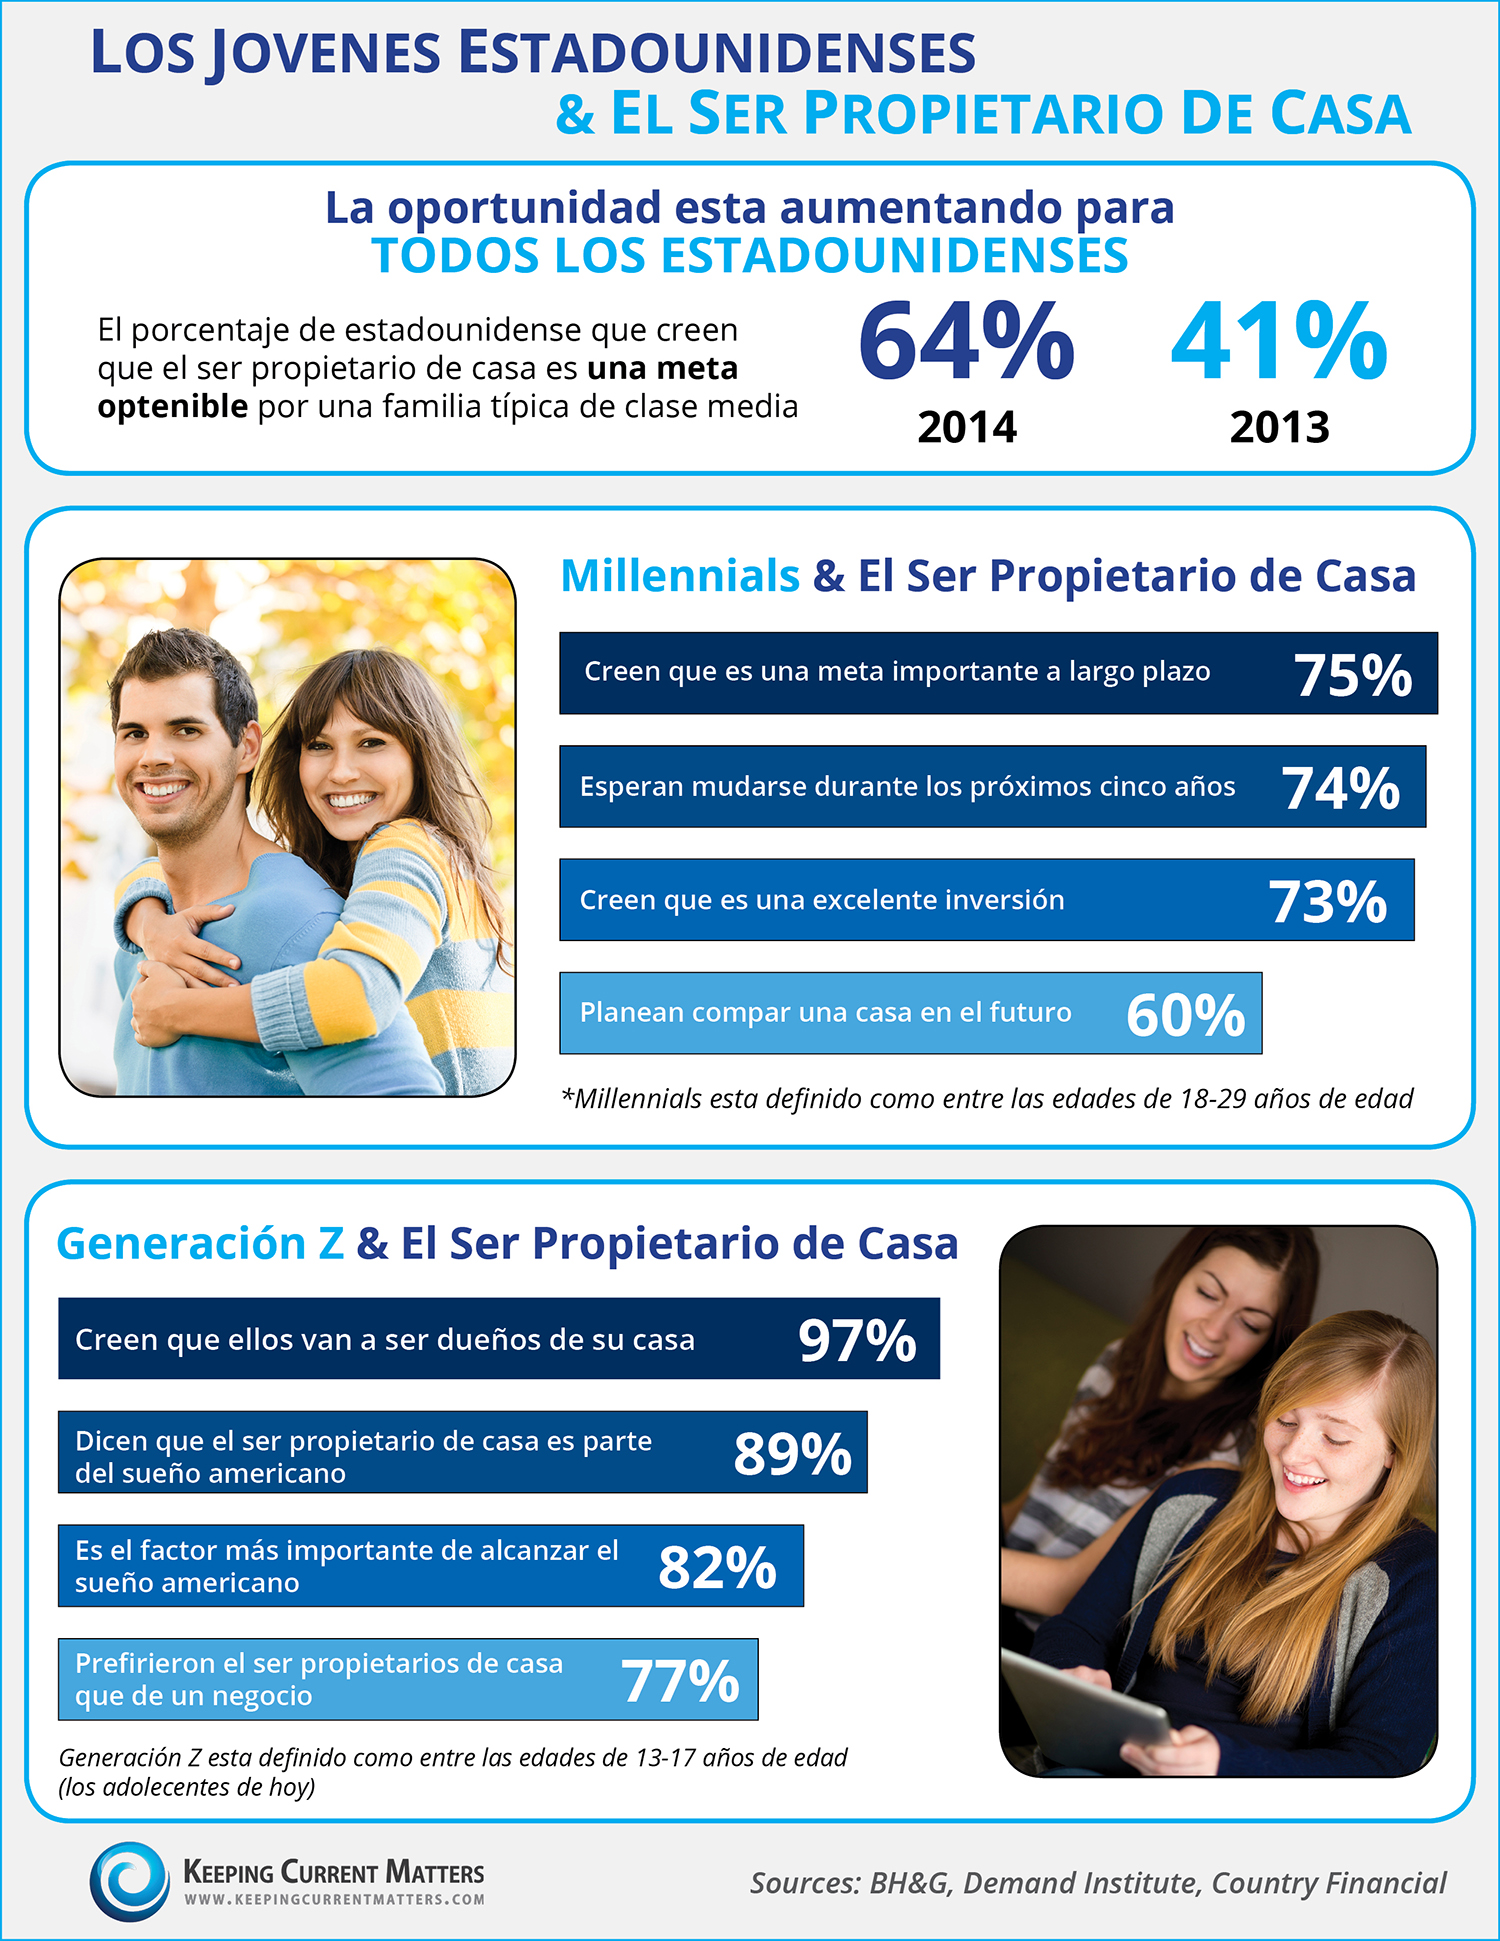 America's Youth & Homeownership Spanish | Keeping Current Matters